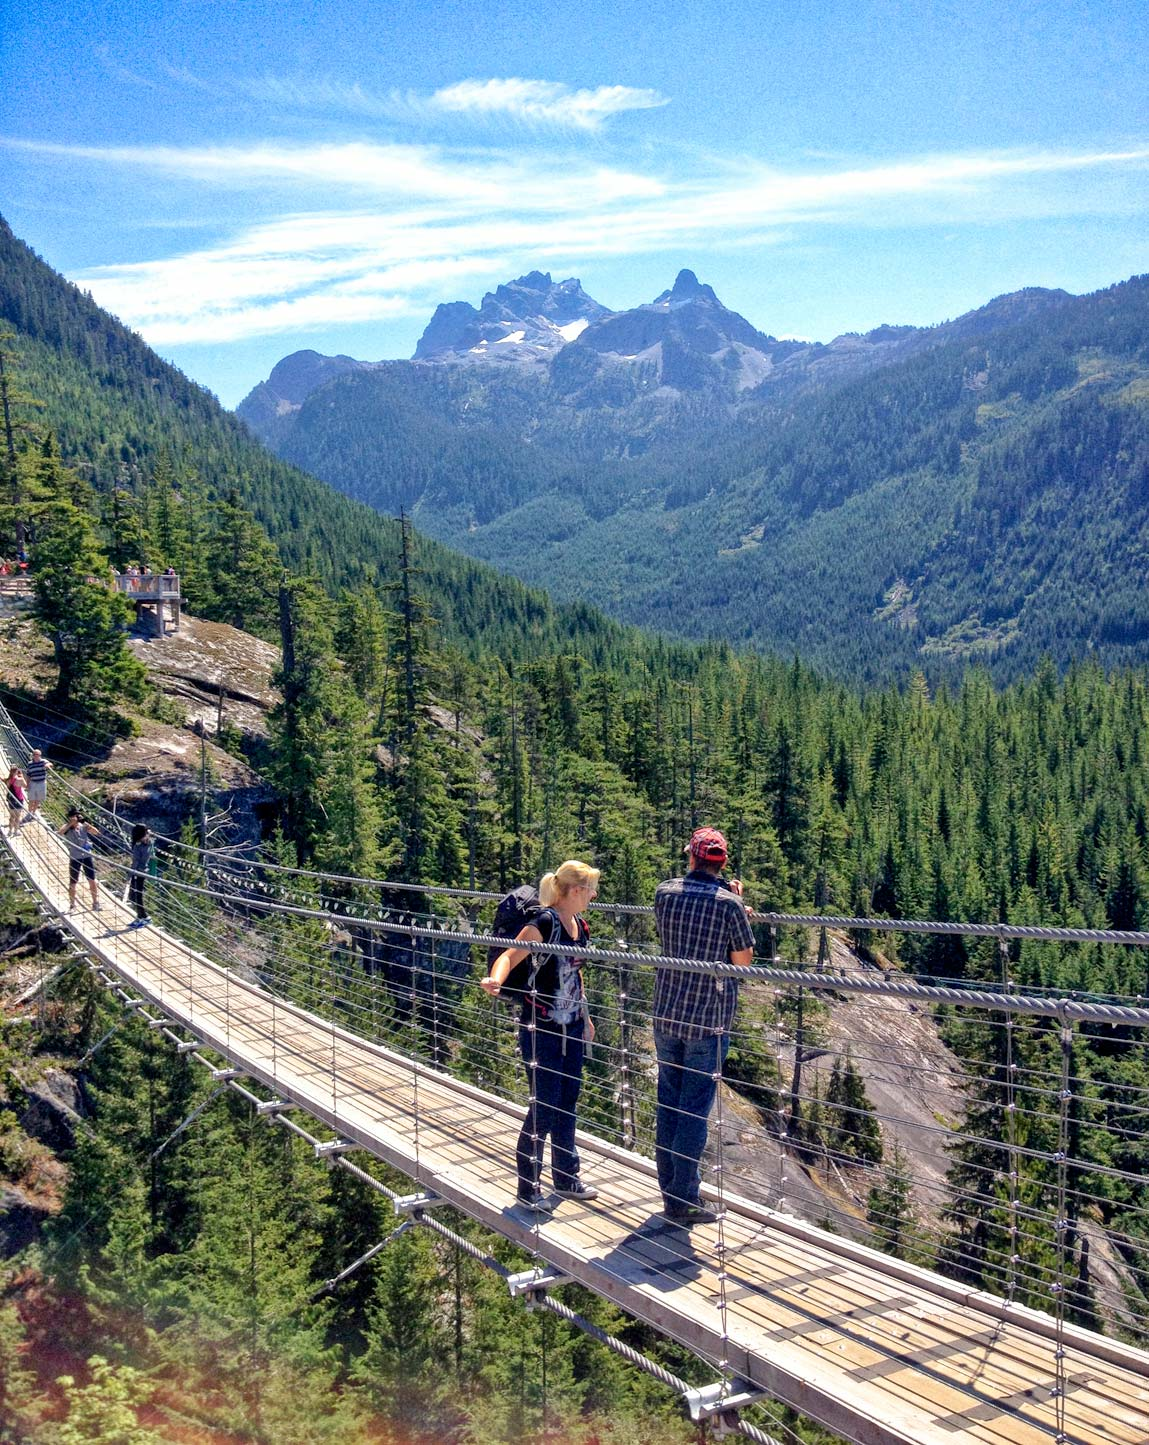 Things to do in Squamish